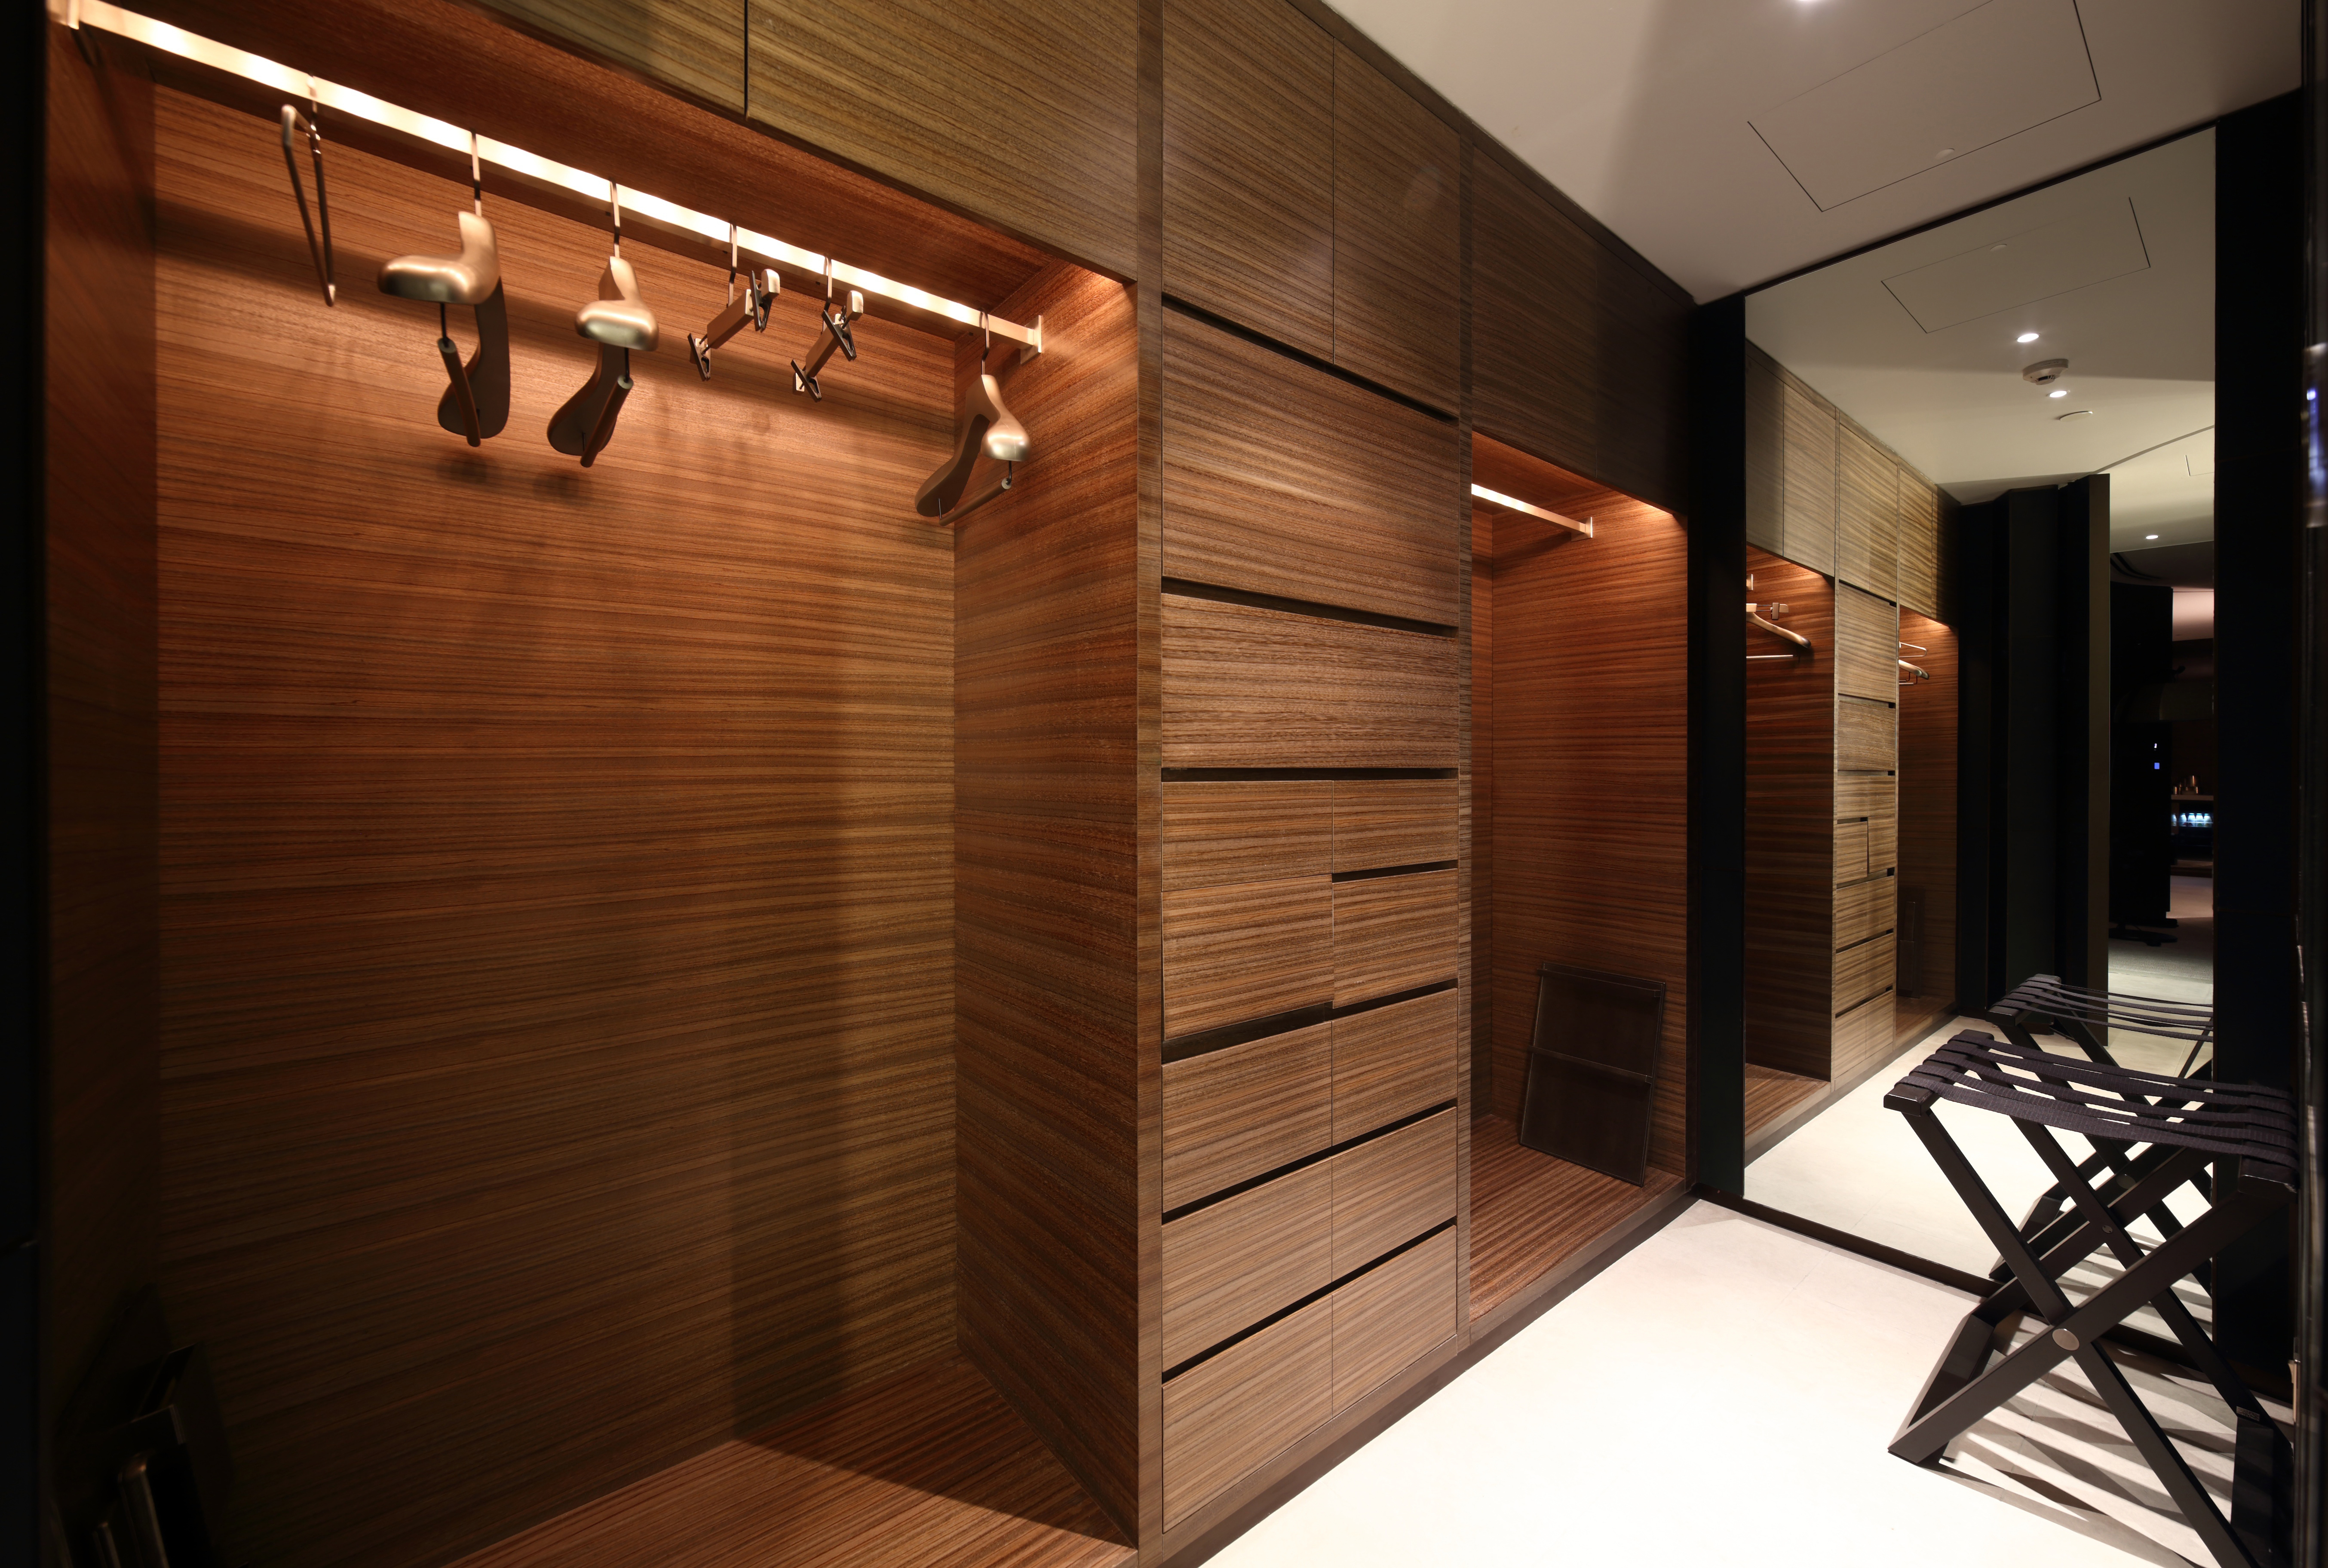 Walk In Closet Designs For Every Personality Type photo - 2